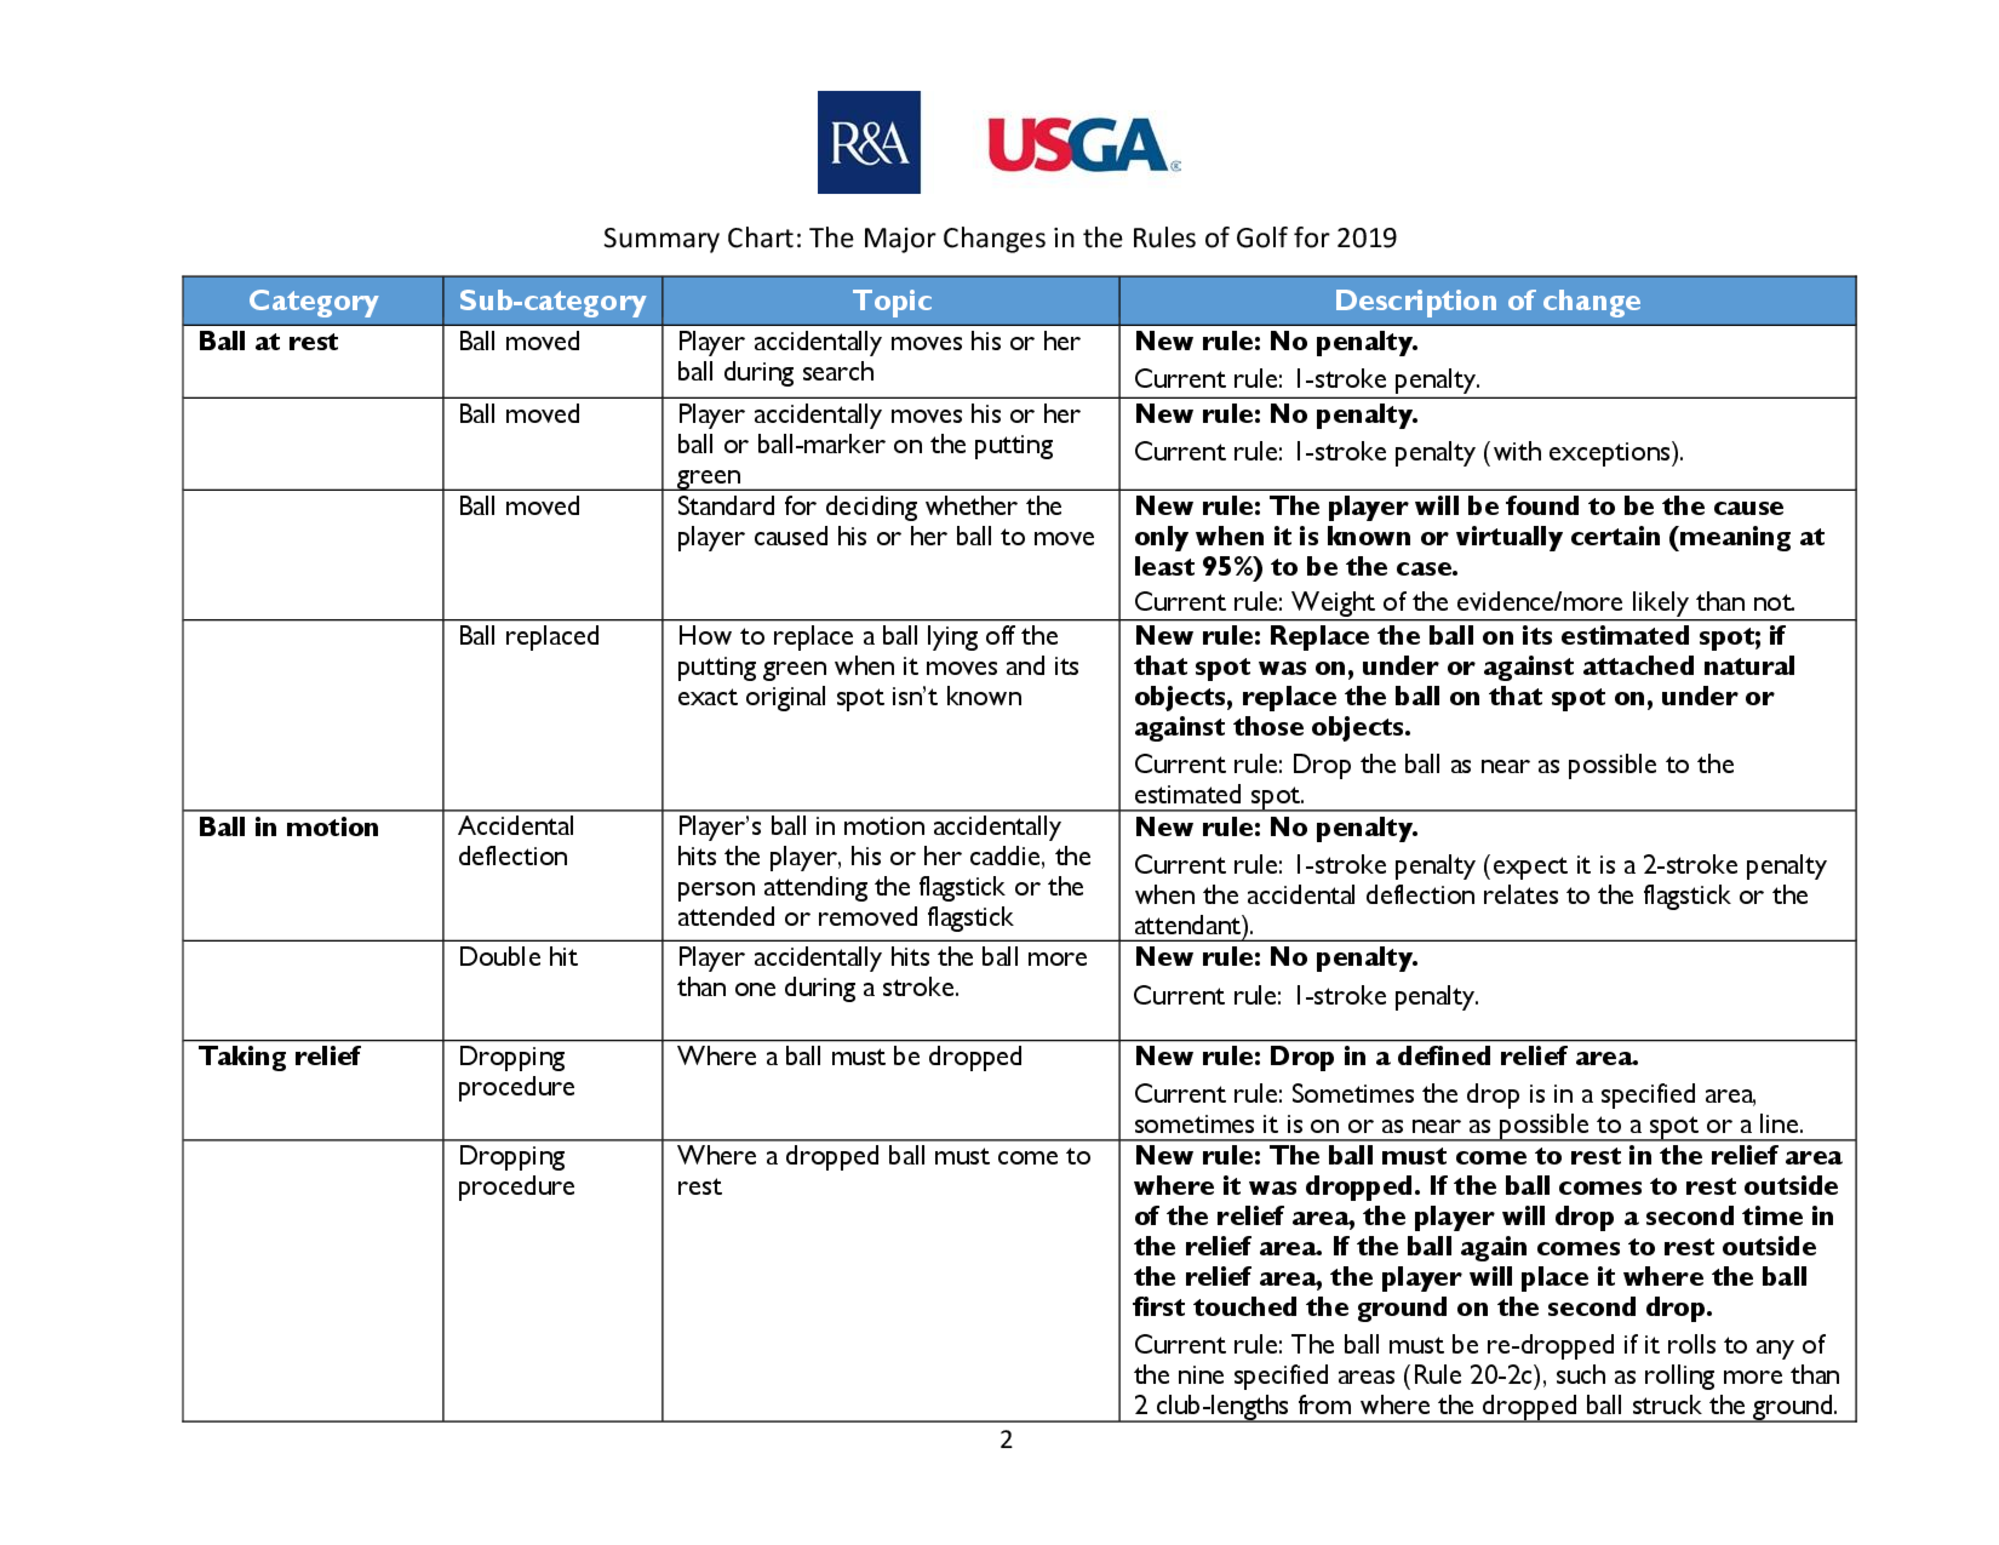 Summary of main changes 2019 rules of golf final  2  2